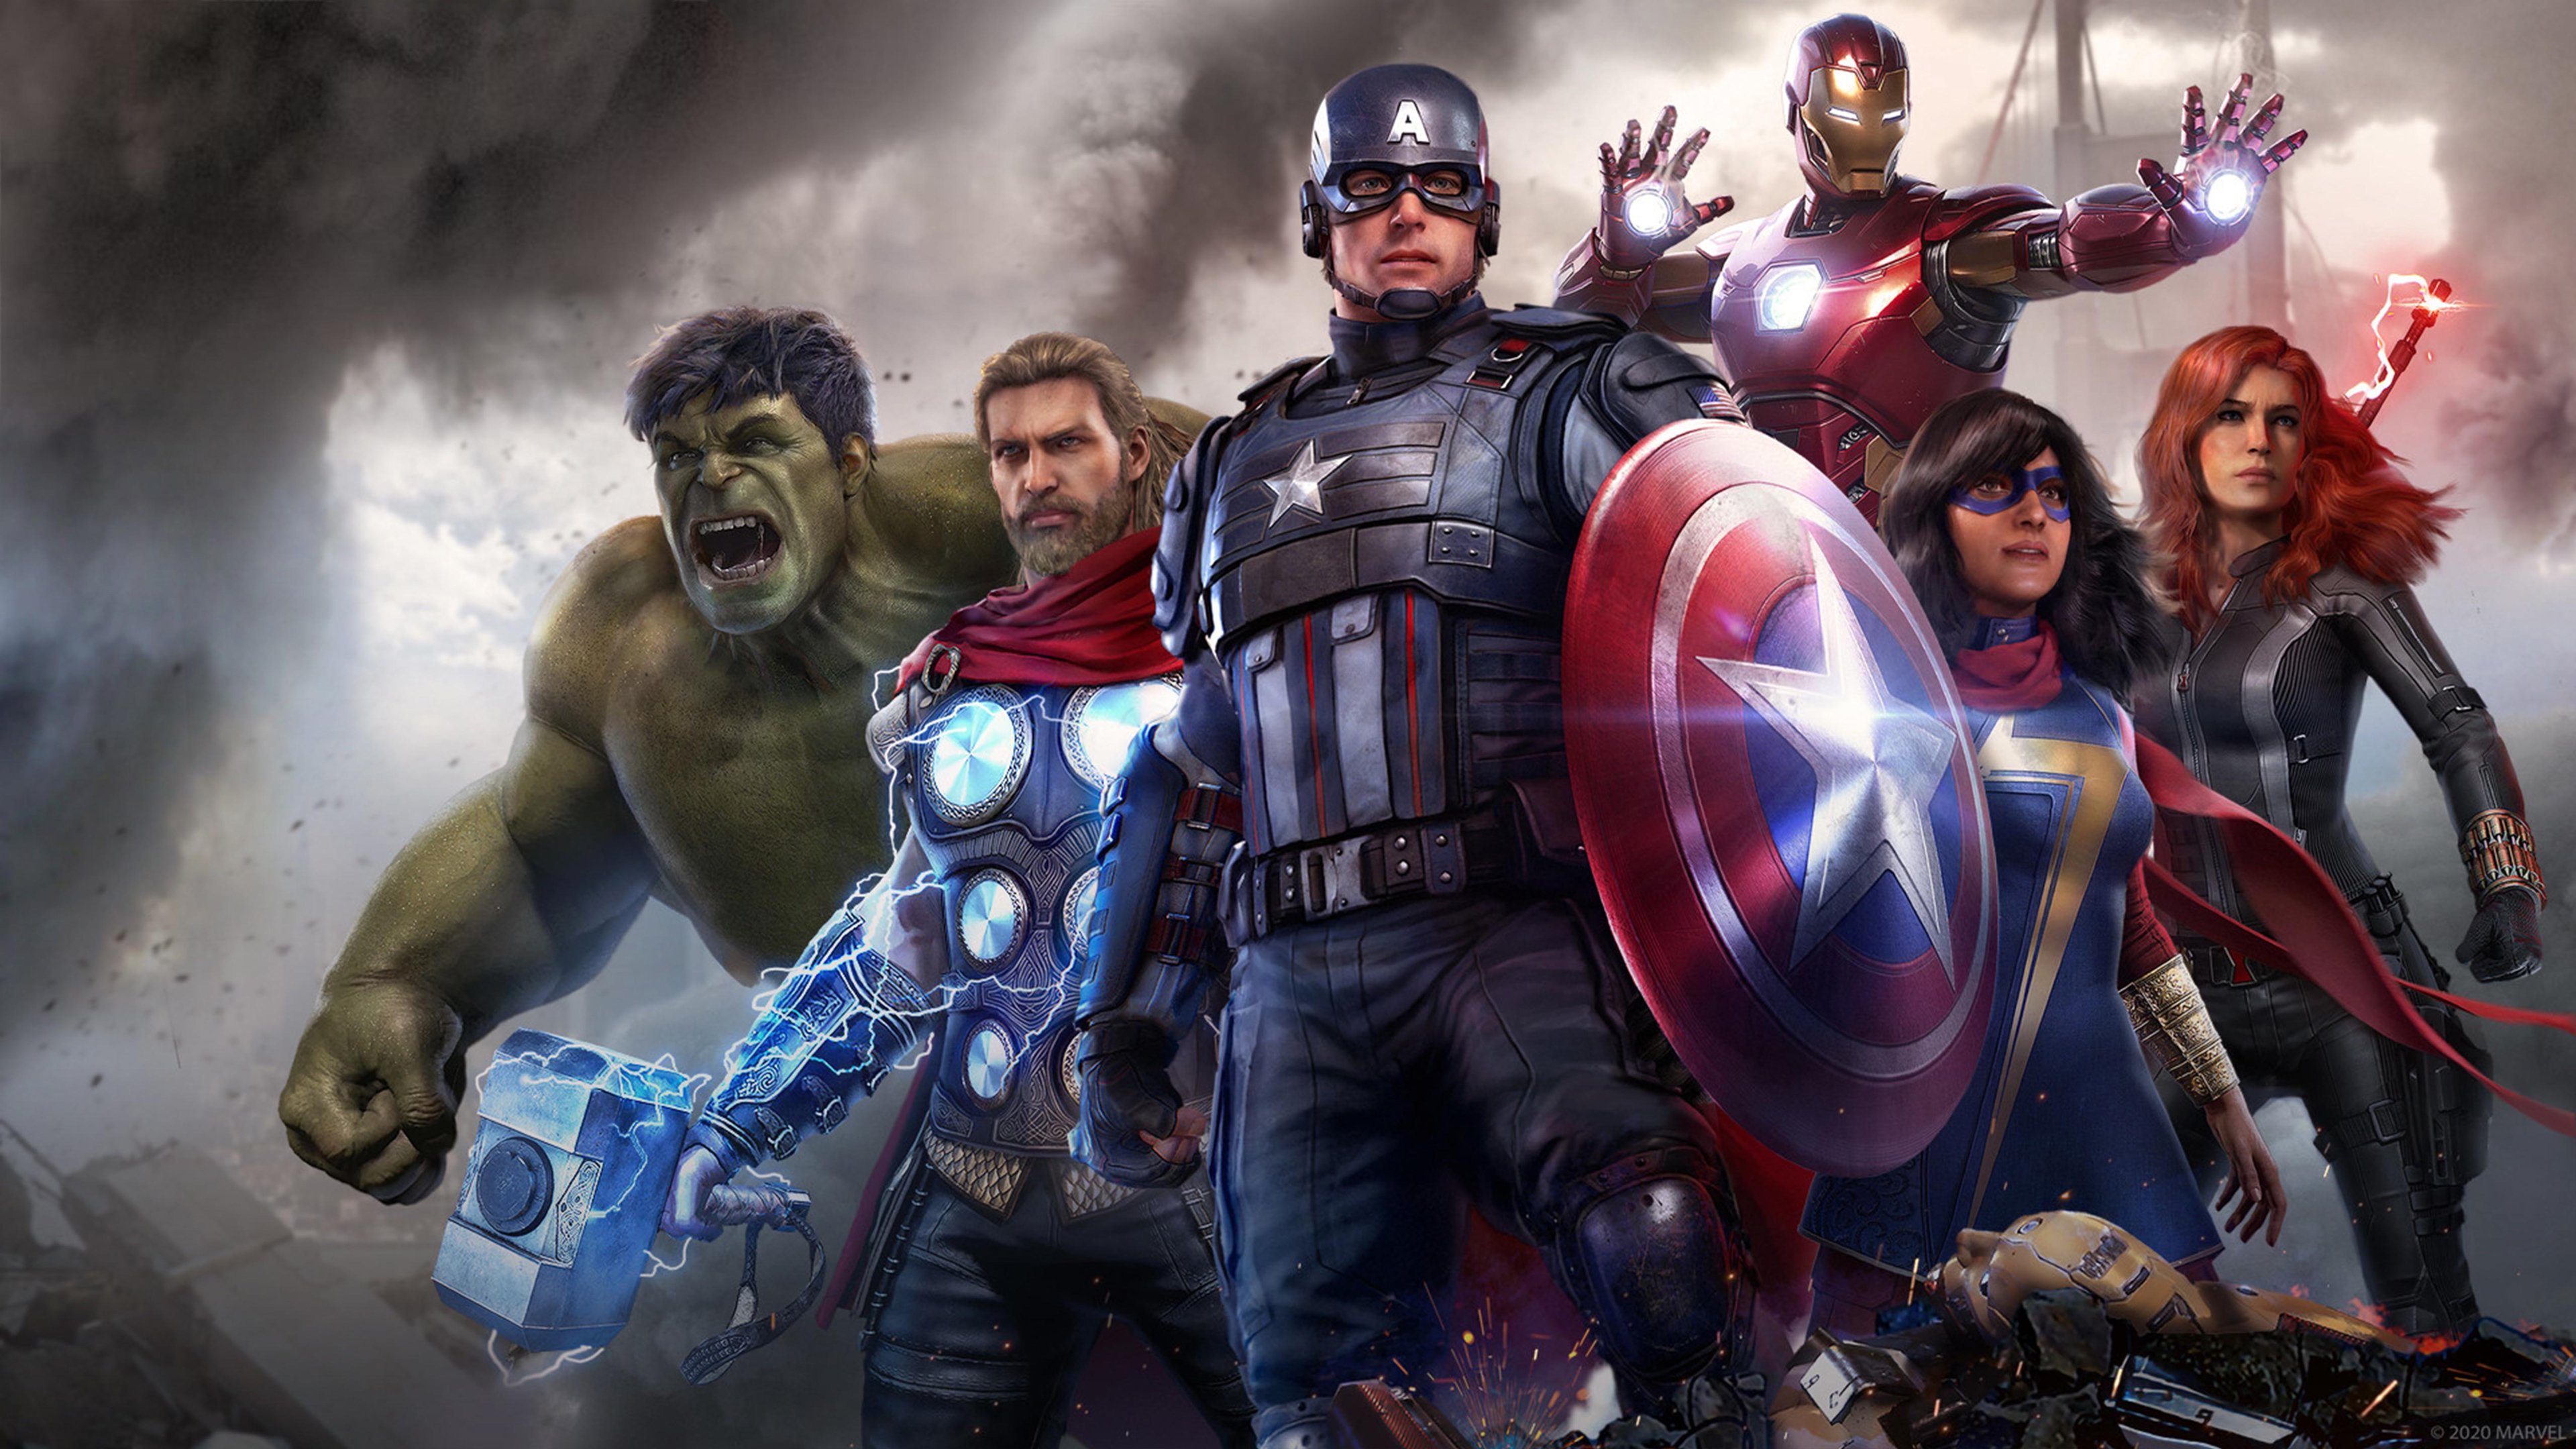 10 4k Hd Marvel S Avengers Desktop Wallpapers For Your Next Background